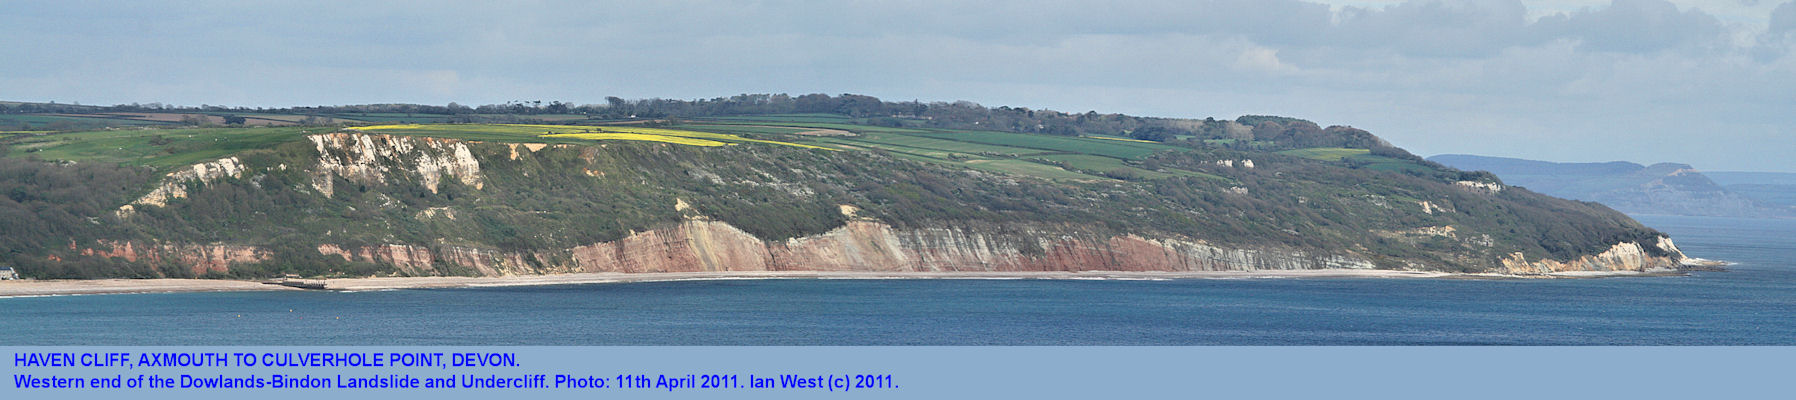 Haven Cliff, Axmouth to Culverhole Point, Devon, 2011